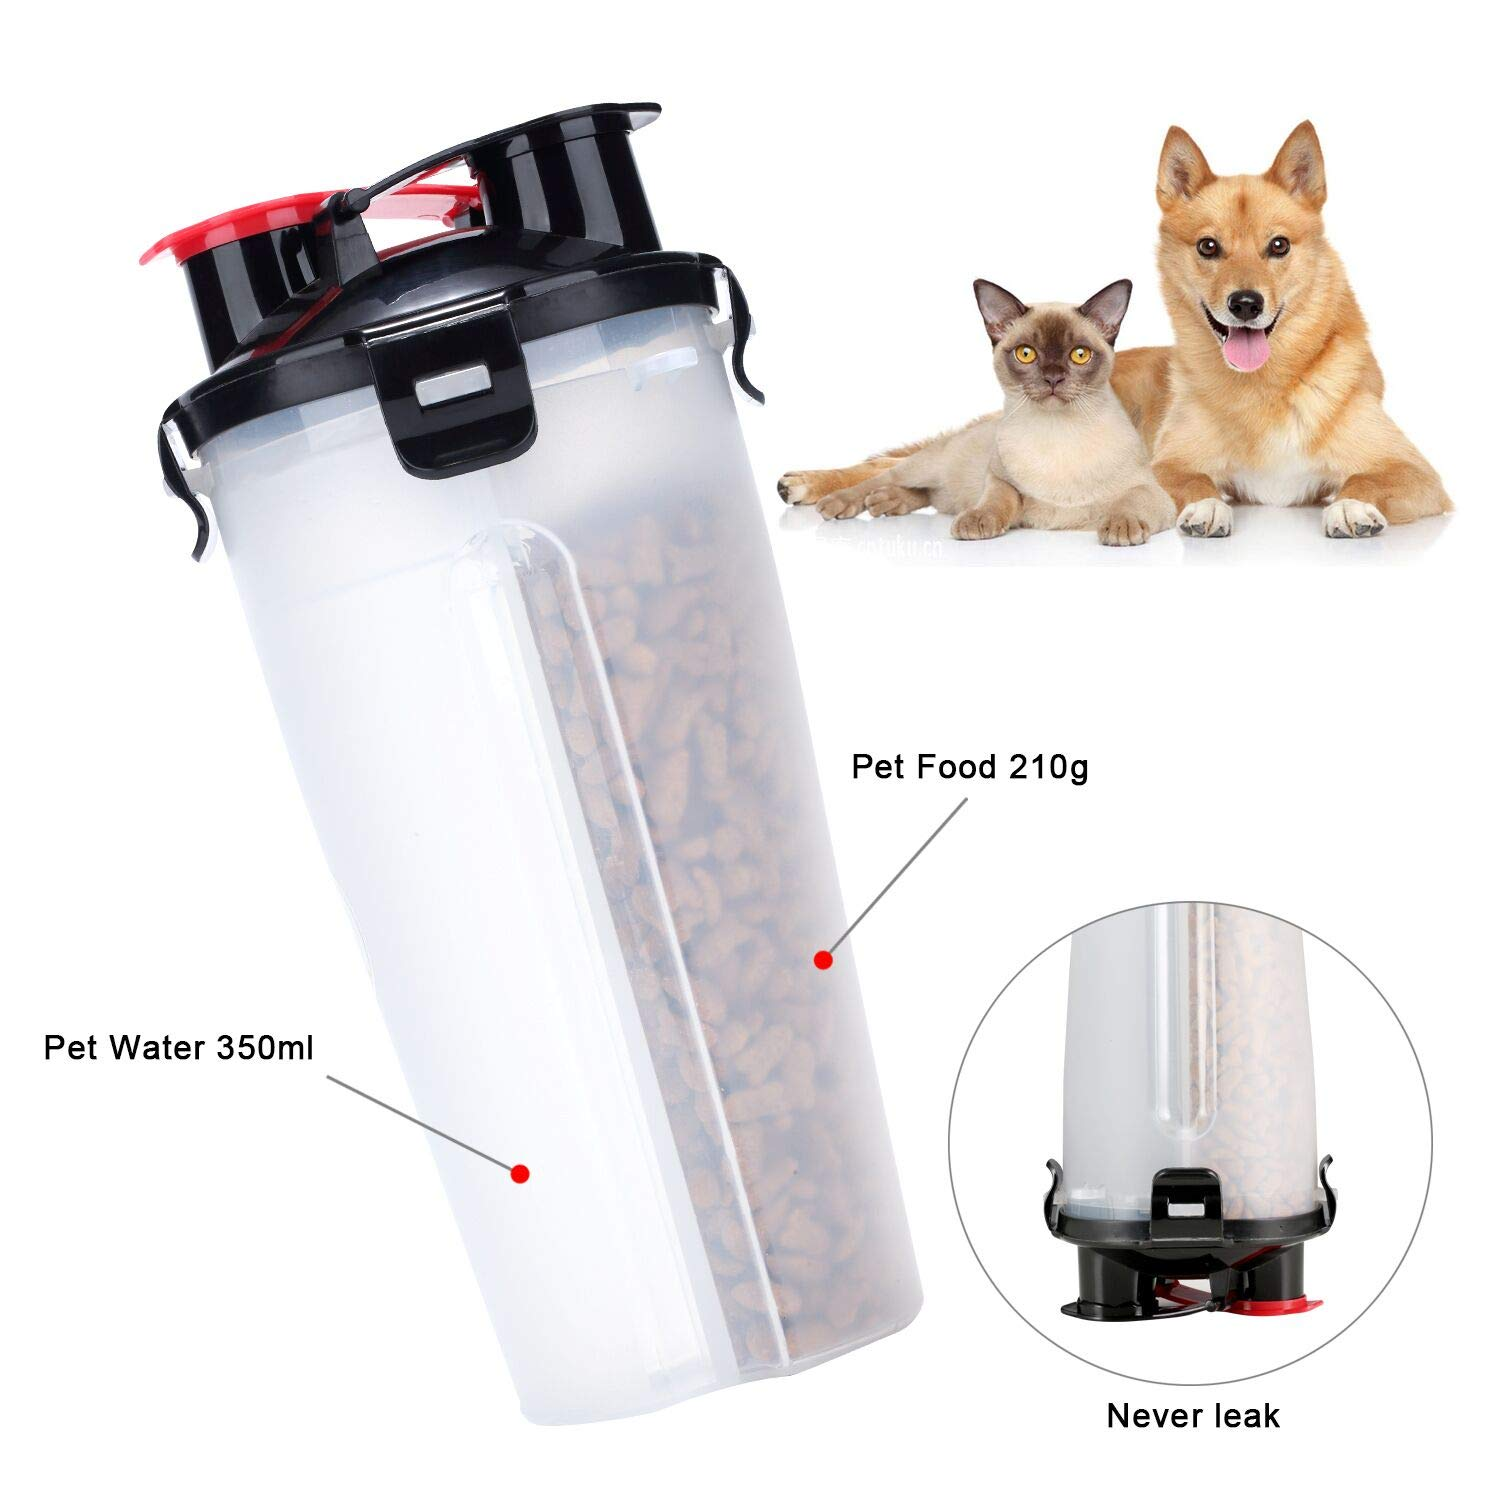 Dog Water Bottle Food Container - VIPpet 2 in 1 Travel Dog Water Dispenser With 2 Collapsible Silicone Bowls for Pets